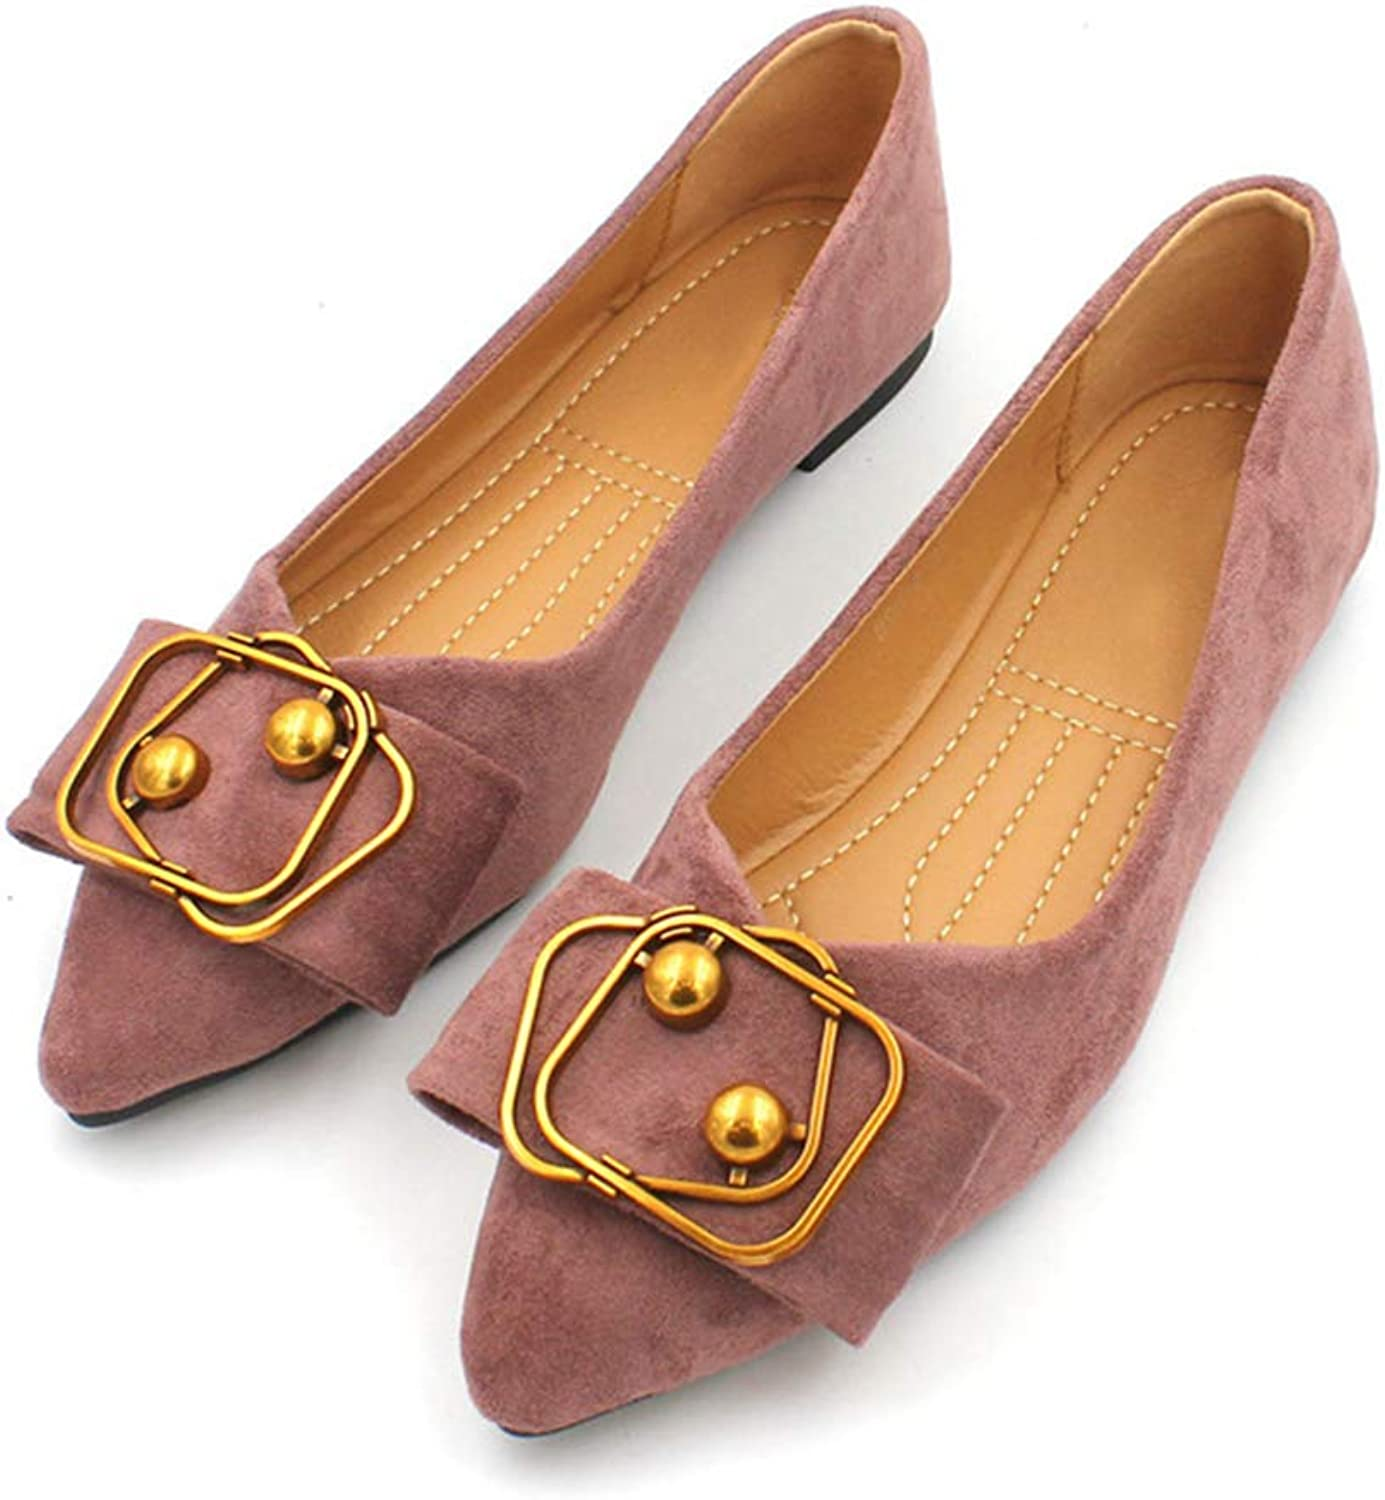 Kyle Walsh Pa Women Flats shoes Pointed Toe Ladies Casual Soft Office Driving Footwear Loafers